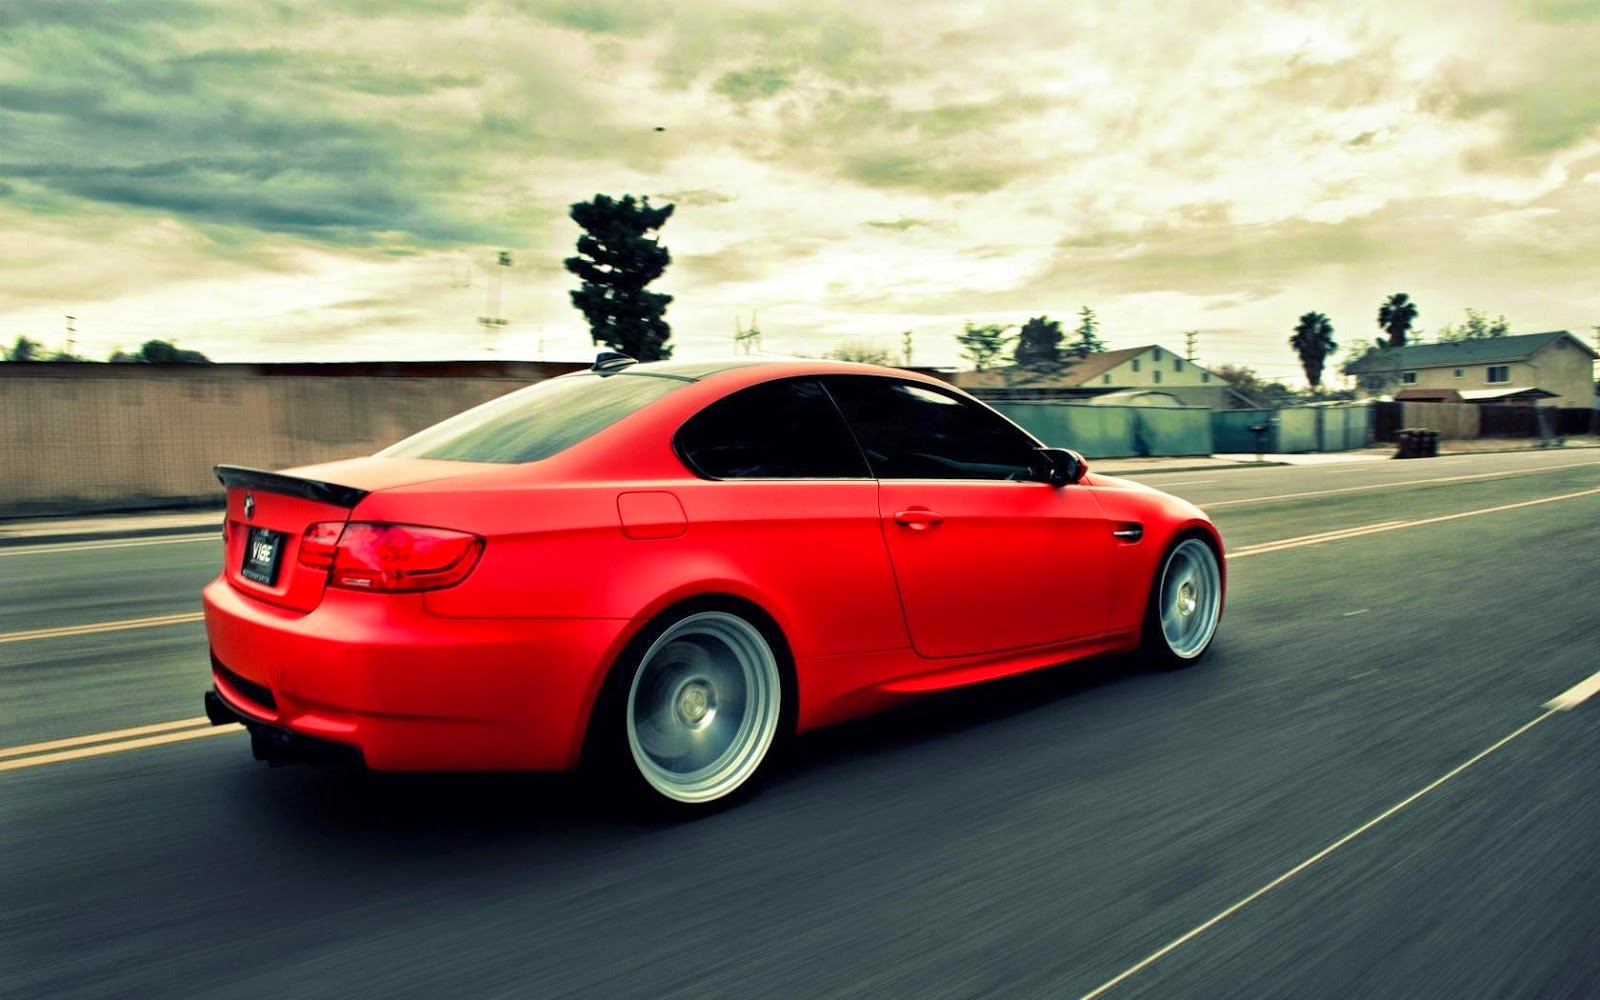 car bmw m3 e92 red wallpapers tuning speed street hd. Black Bedroom Furniture Sets. Home Design Ideas